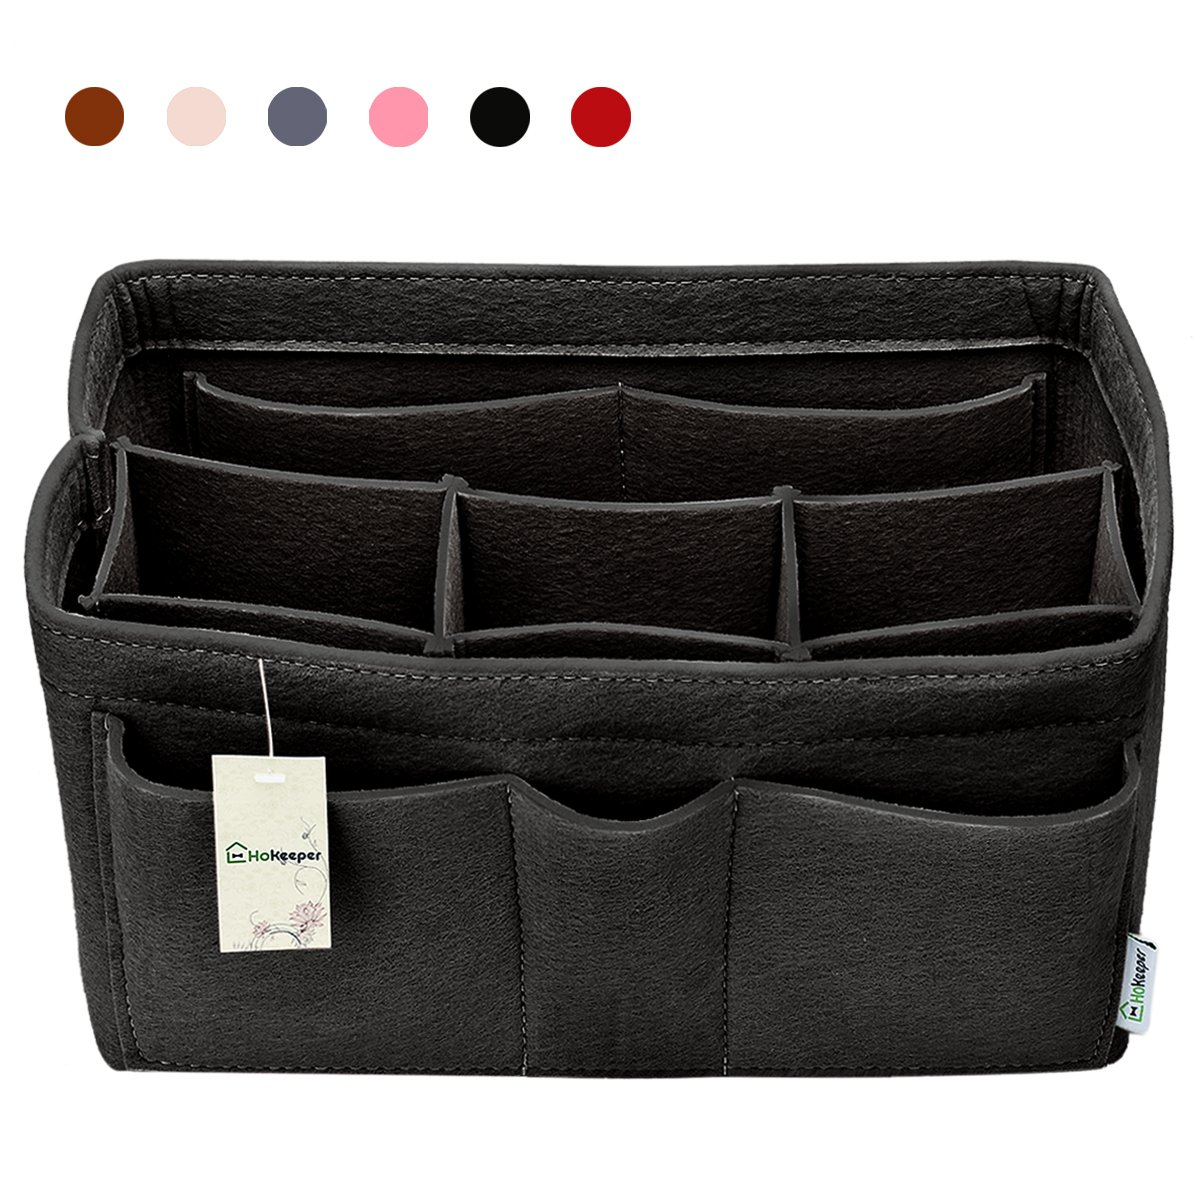 Hokeeper Felt Purse Insert Organizer, Handbag Organizer, Bag in Bag for Handbag Purse Tote, Diaper Bag Organizer, Stand on Its Own,10 Compartments, 4 Sizes, 6 Colors (X-Large, Black)